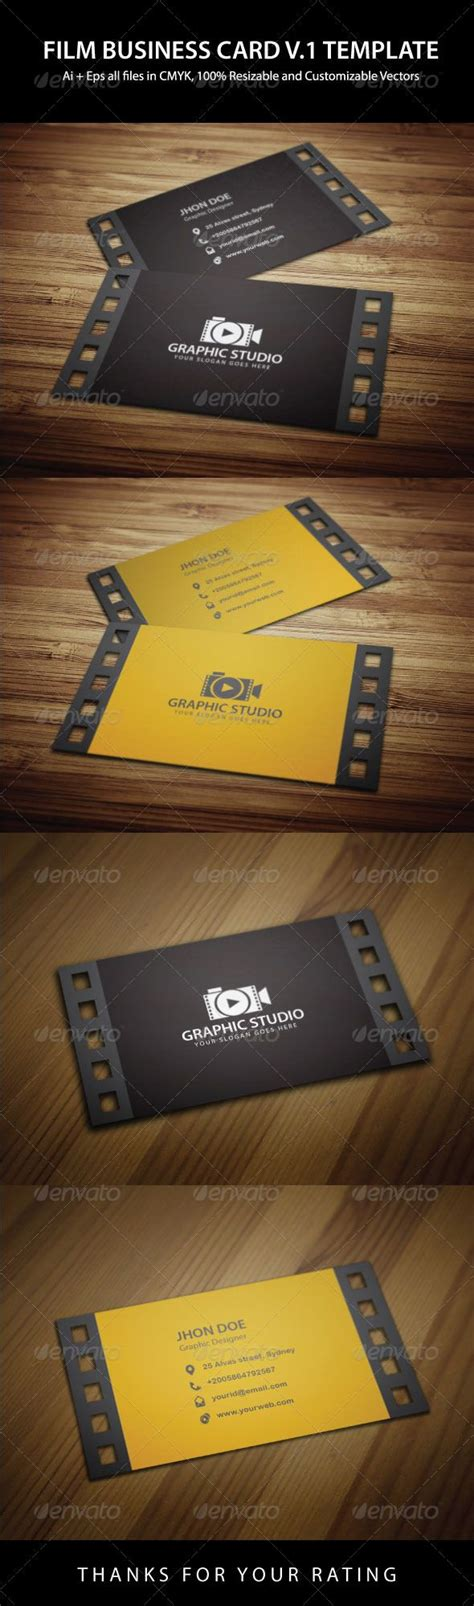 add a card template to magiccardeditor 1000 ideas about business card templates on